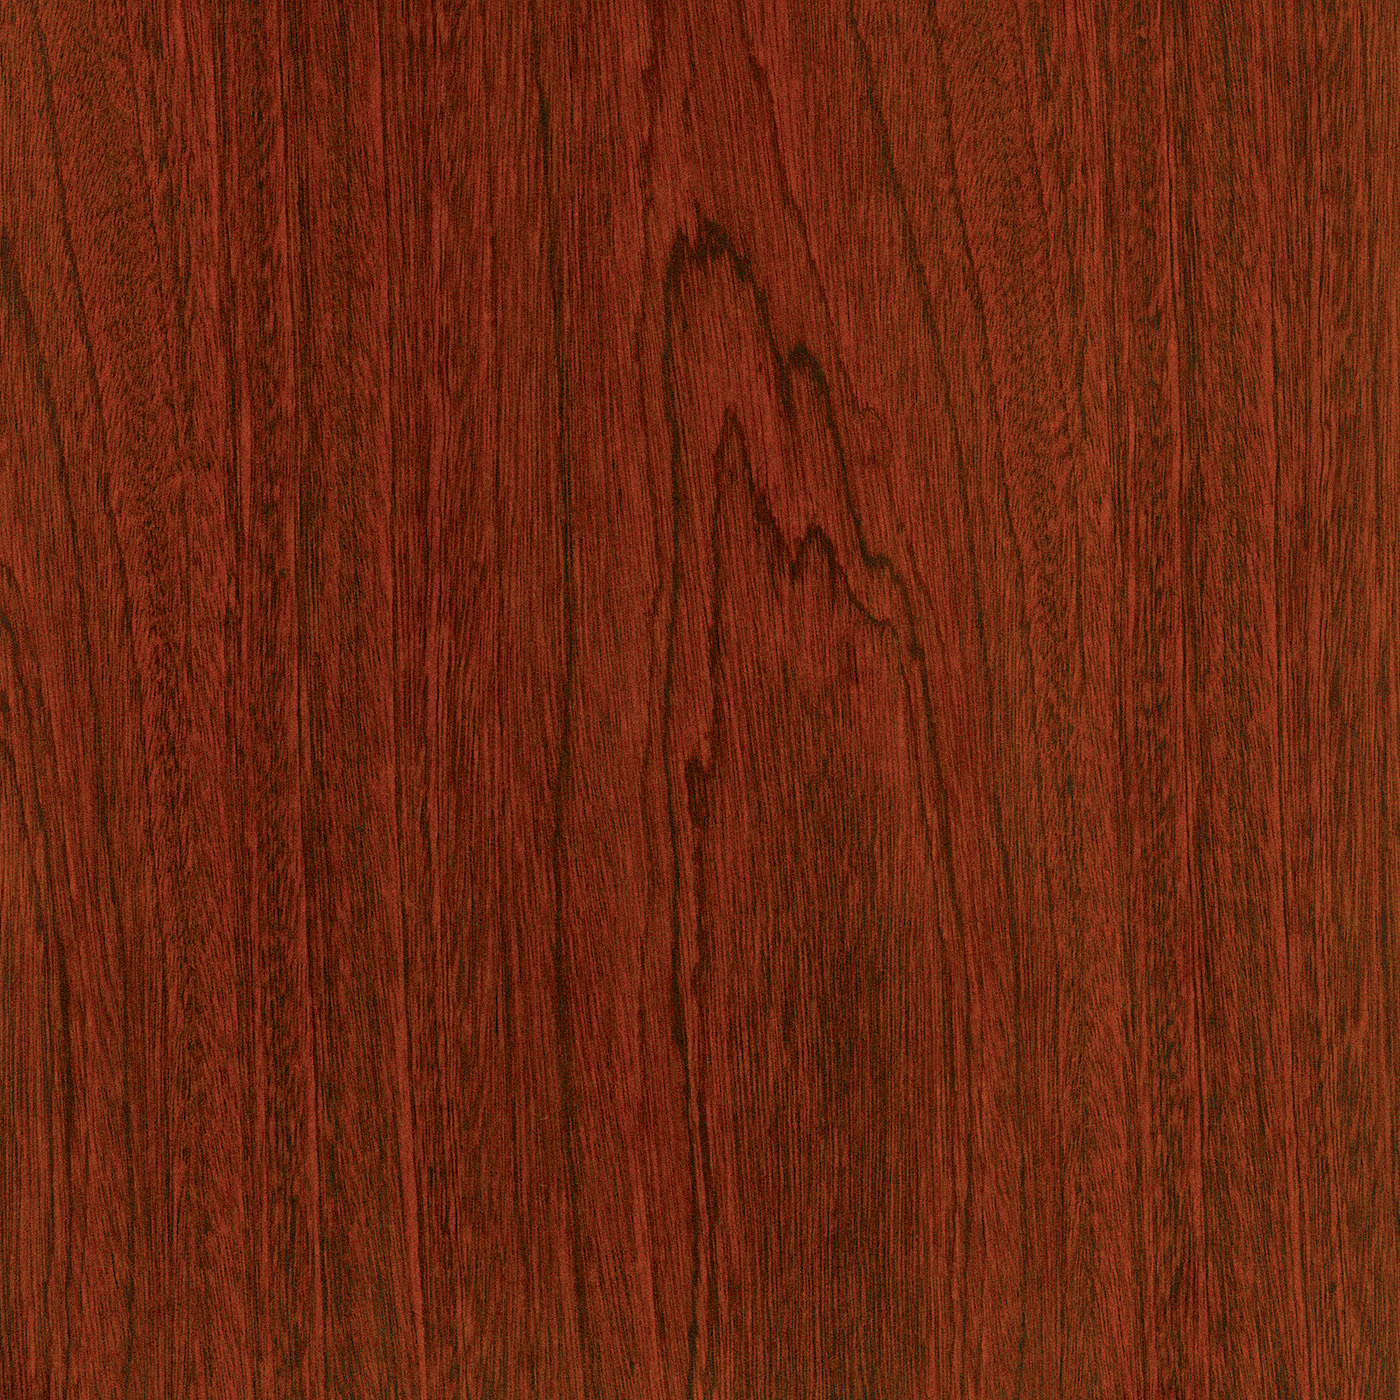 Spanish mahogany laminate countertops